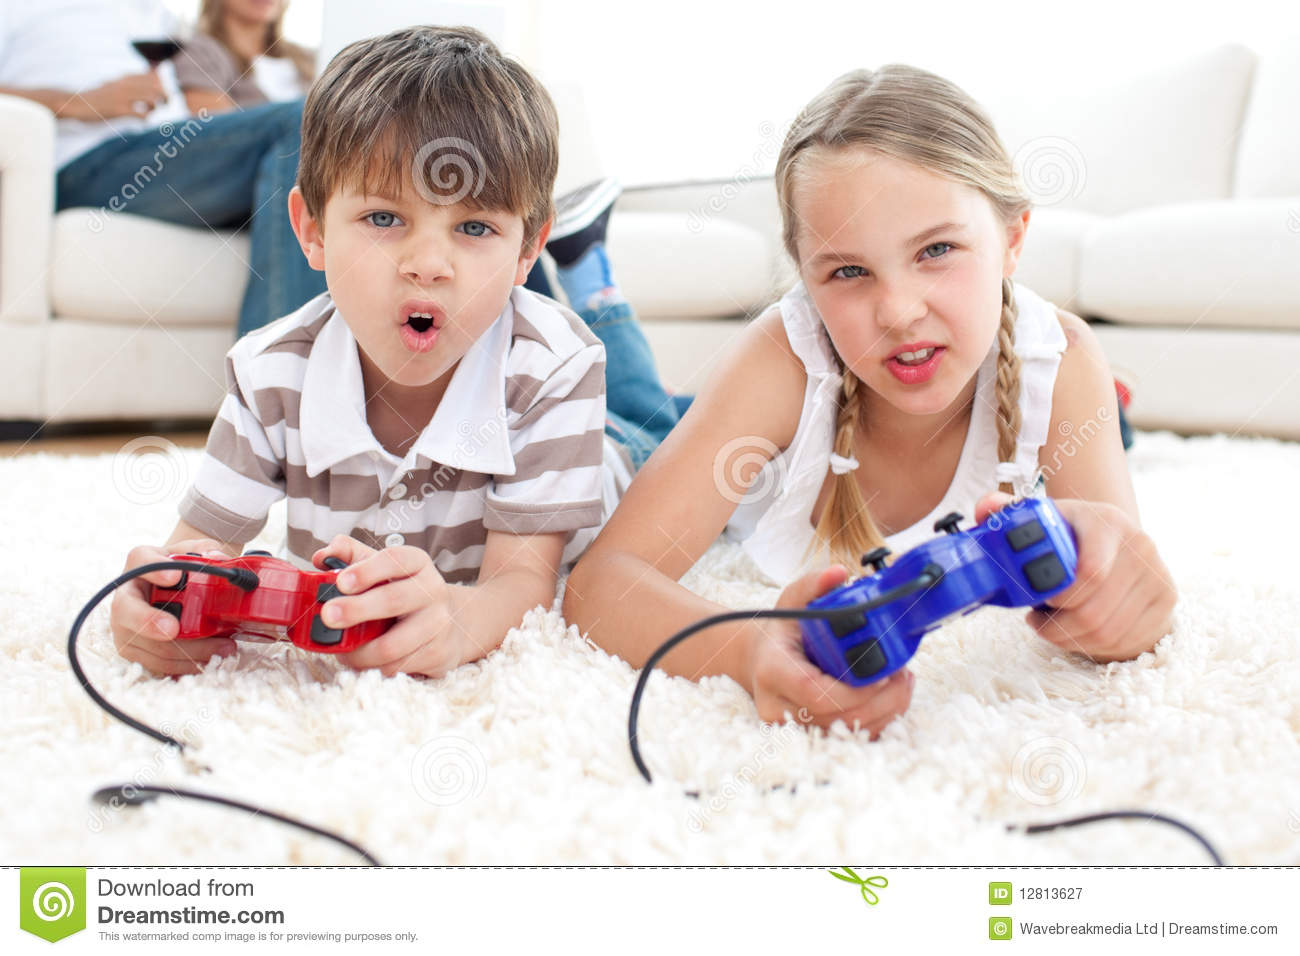 Animated Children Playing Video Games Stock Image Image  : animated children playing video games 12813627 from www.dreamstime.com size 1300 x 956 jpeg 125kB